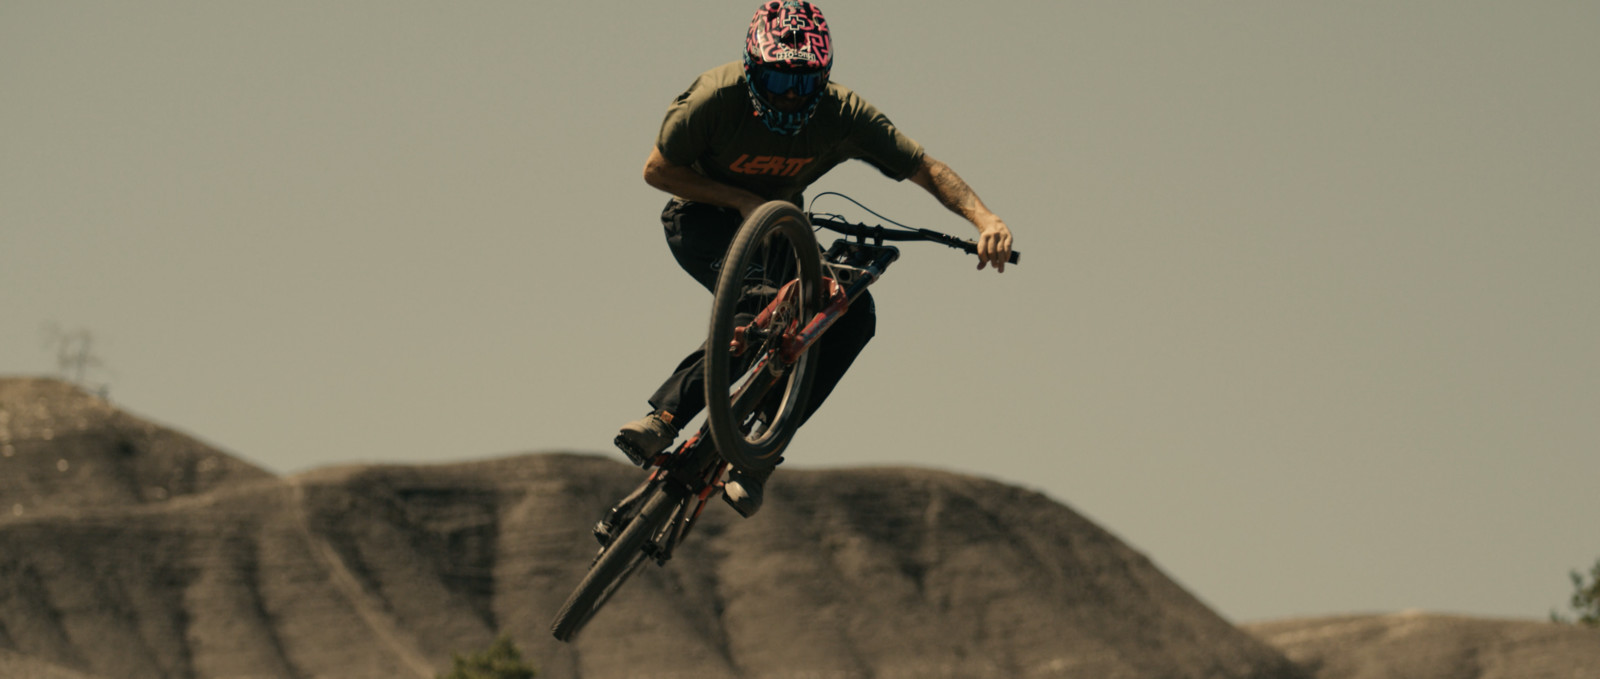 Tomas Lemoine demonstrates his huge skill set on a number of his bikes